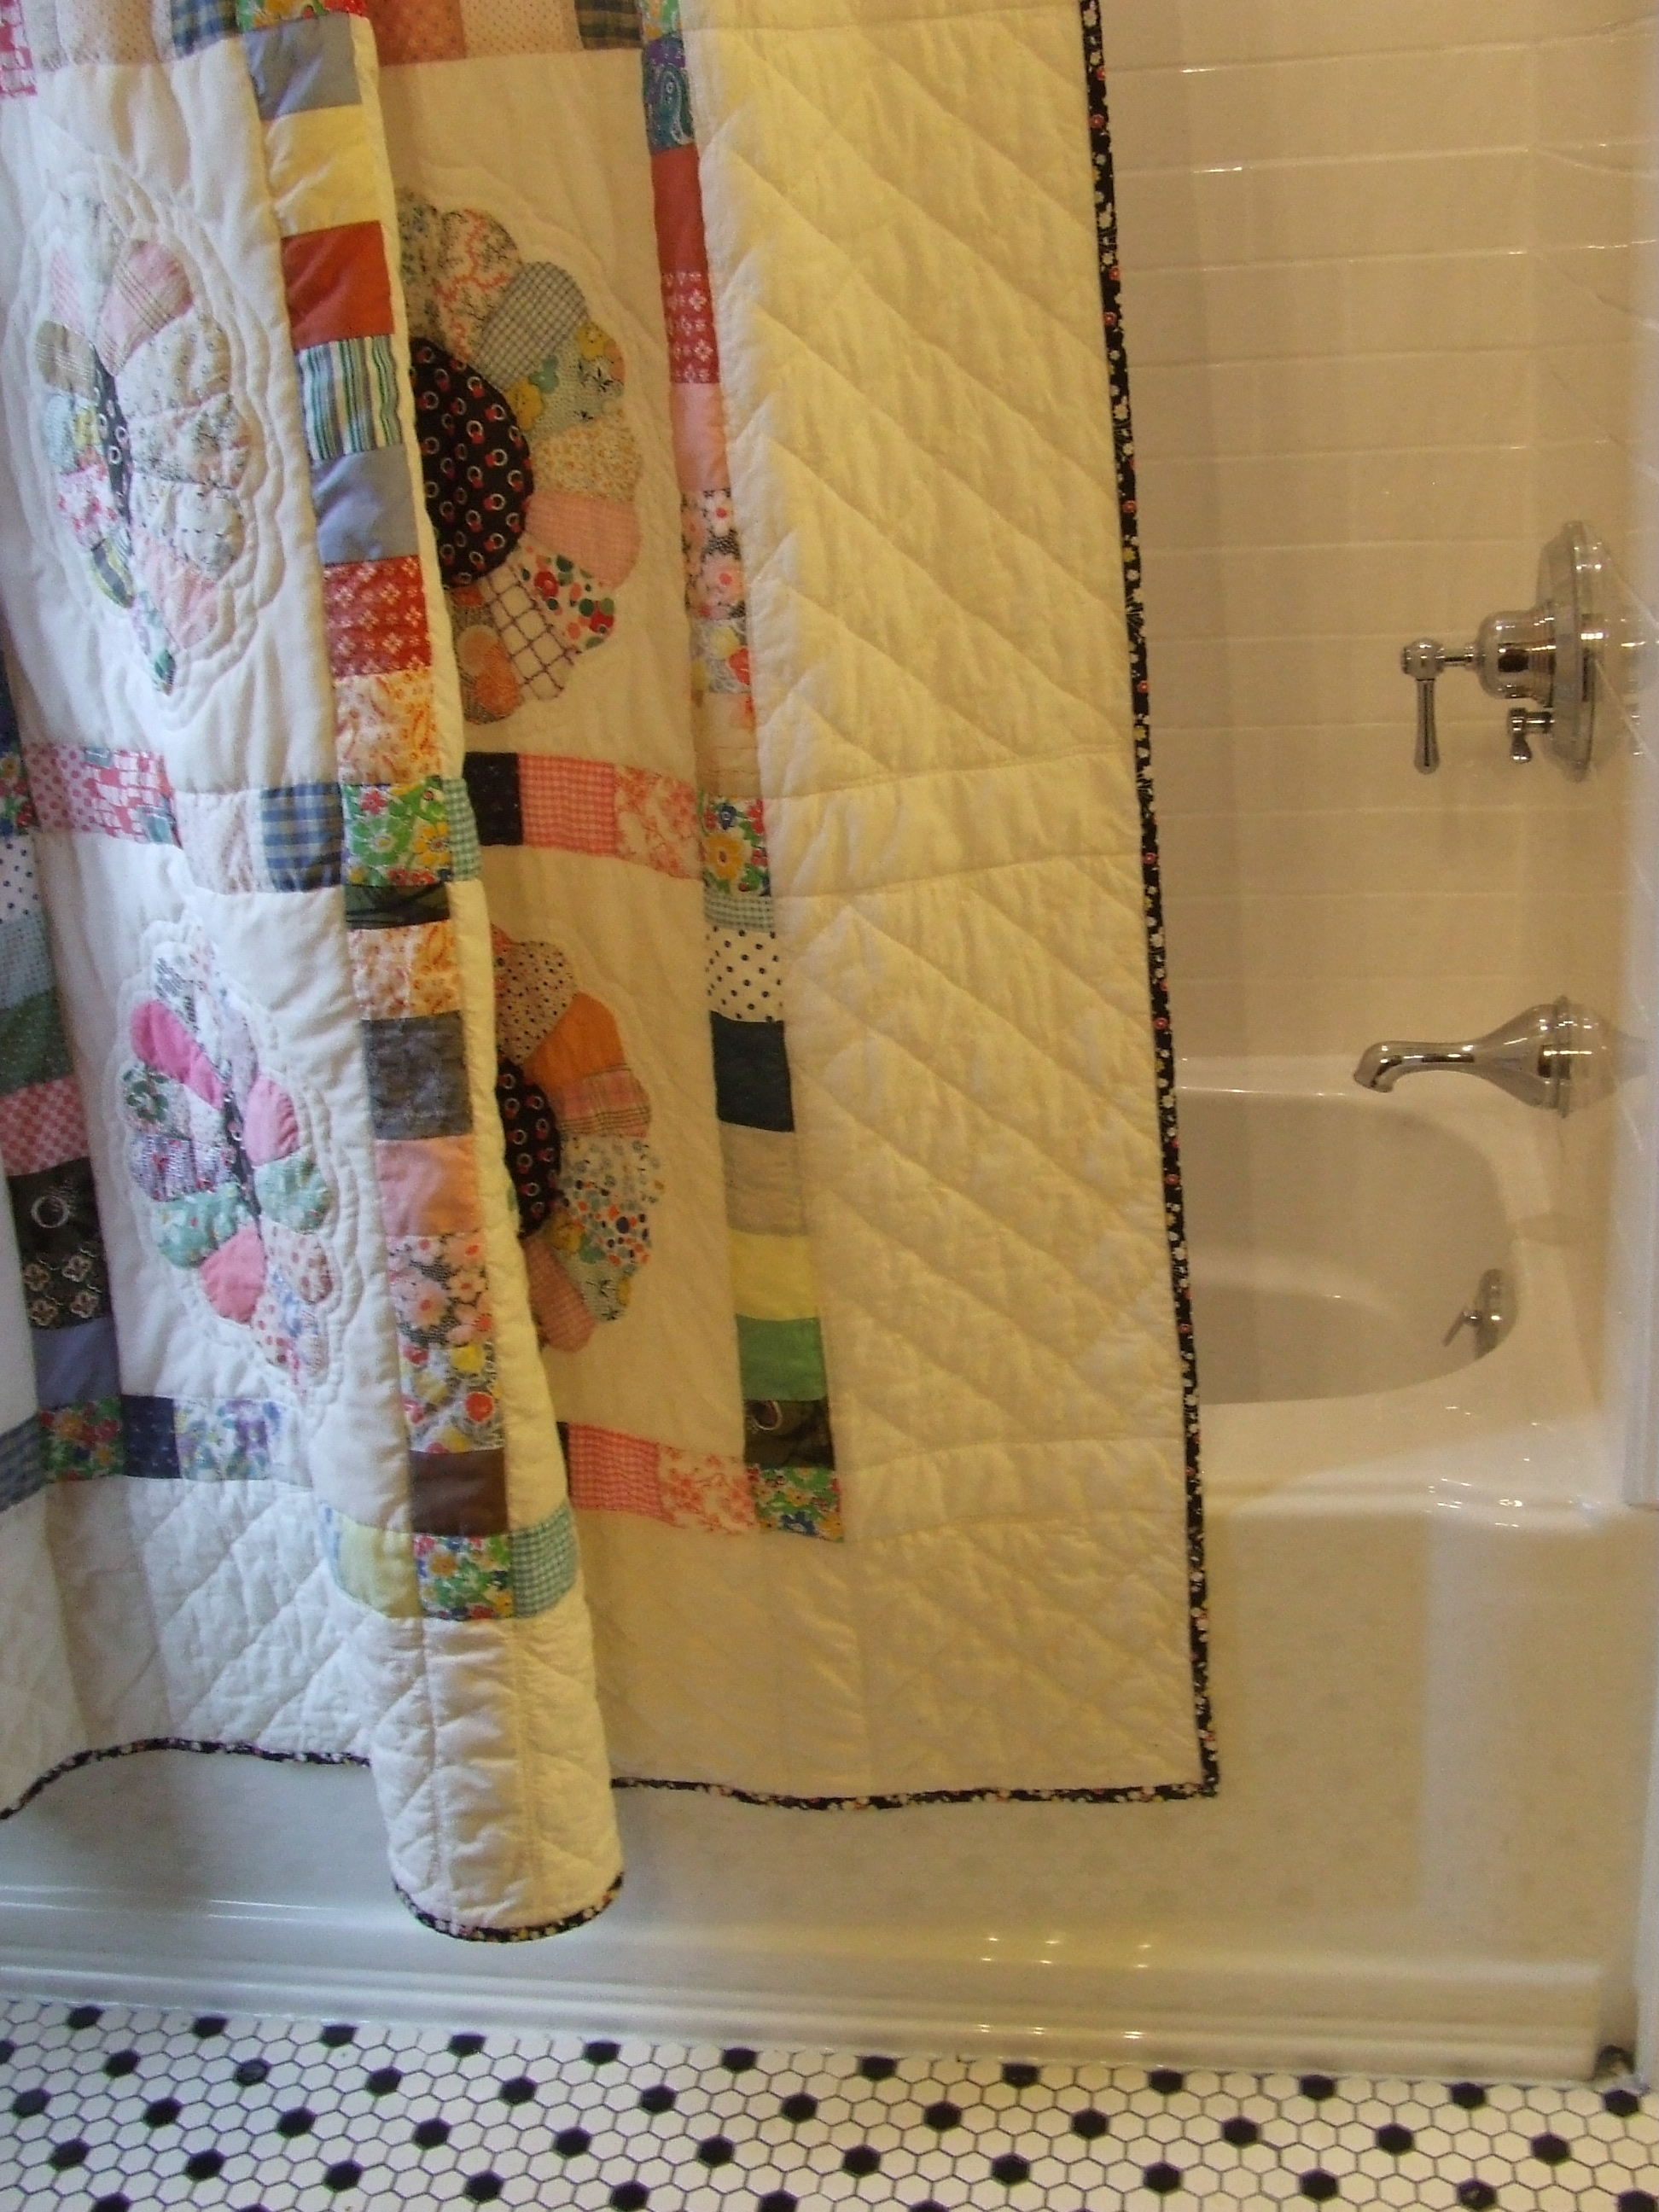 Shower curtain quilt | Tim Latimer - Quilts etc